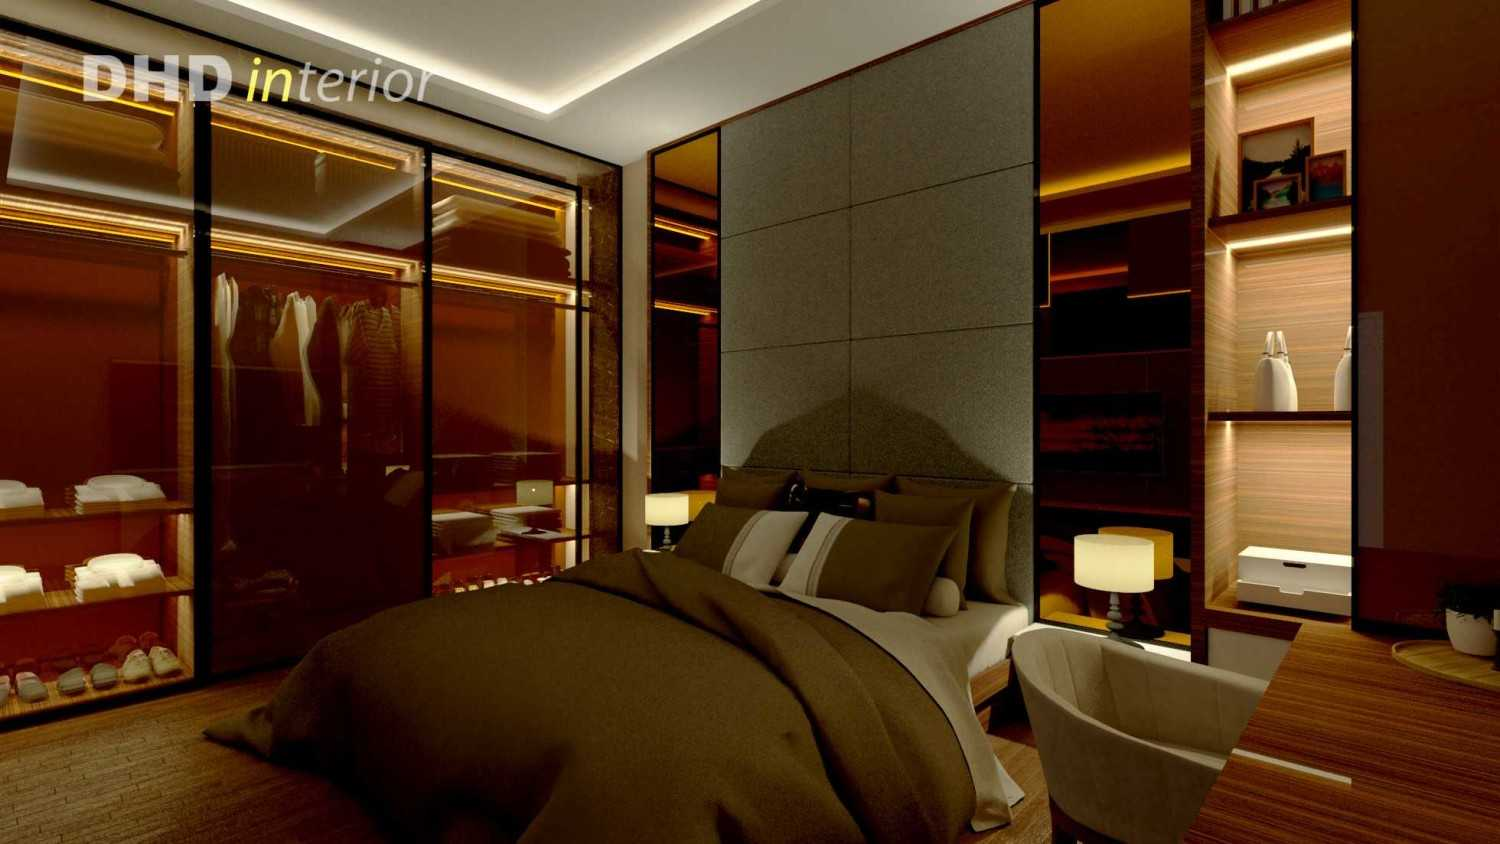 Dhd Interior Luxury Bedroom Pontianak, Kota Pontianak, Kalimantan Barat, Indonesia Pontianak, Kota Pontianak, Kalimantan Barat, Indonesia Bedroom  43213